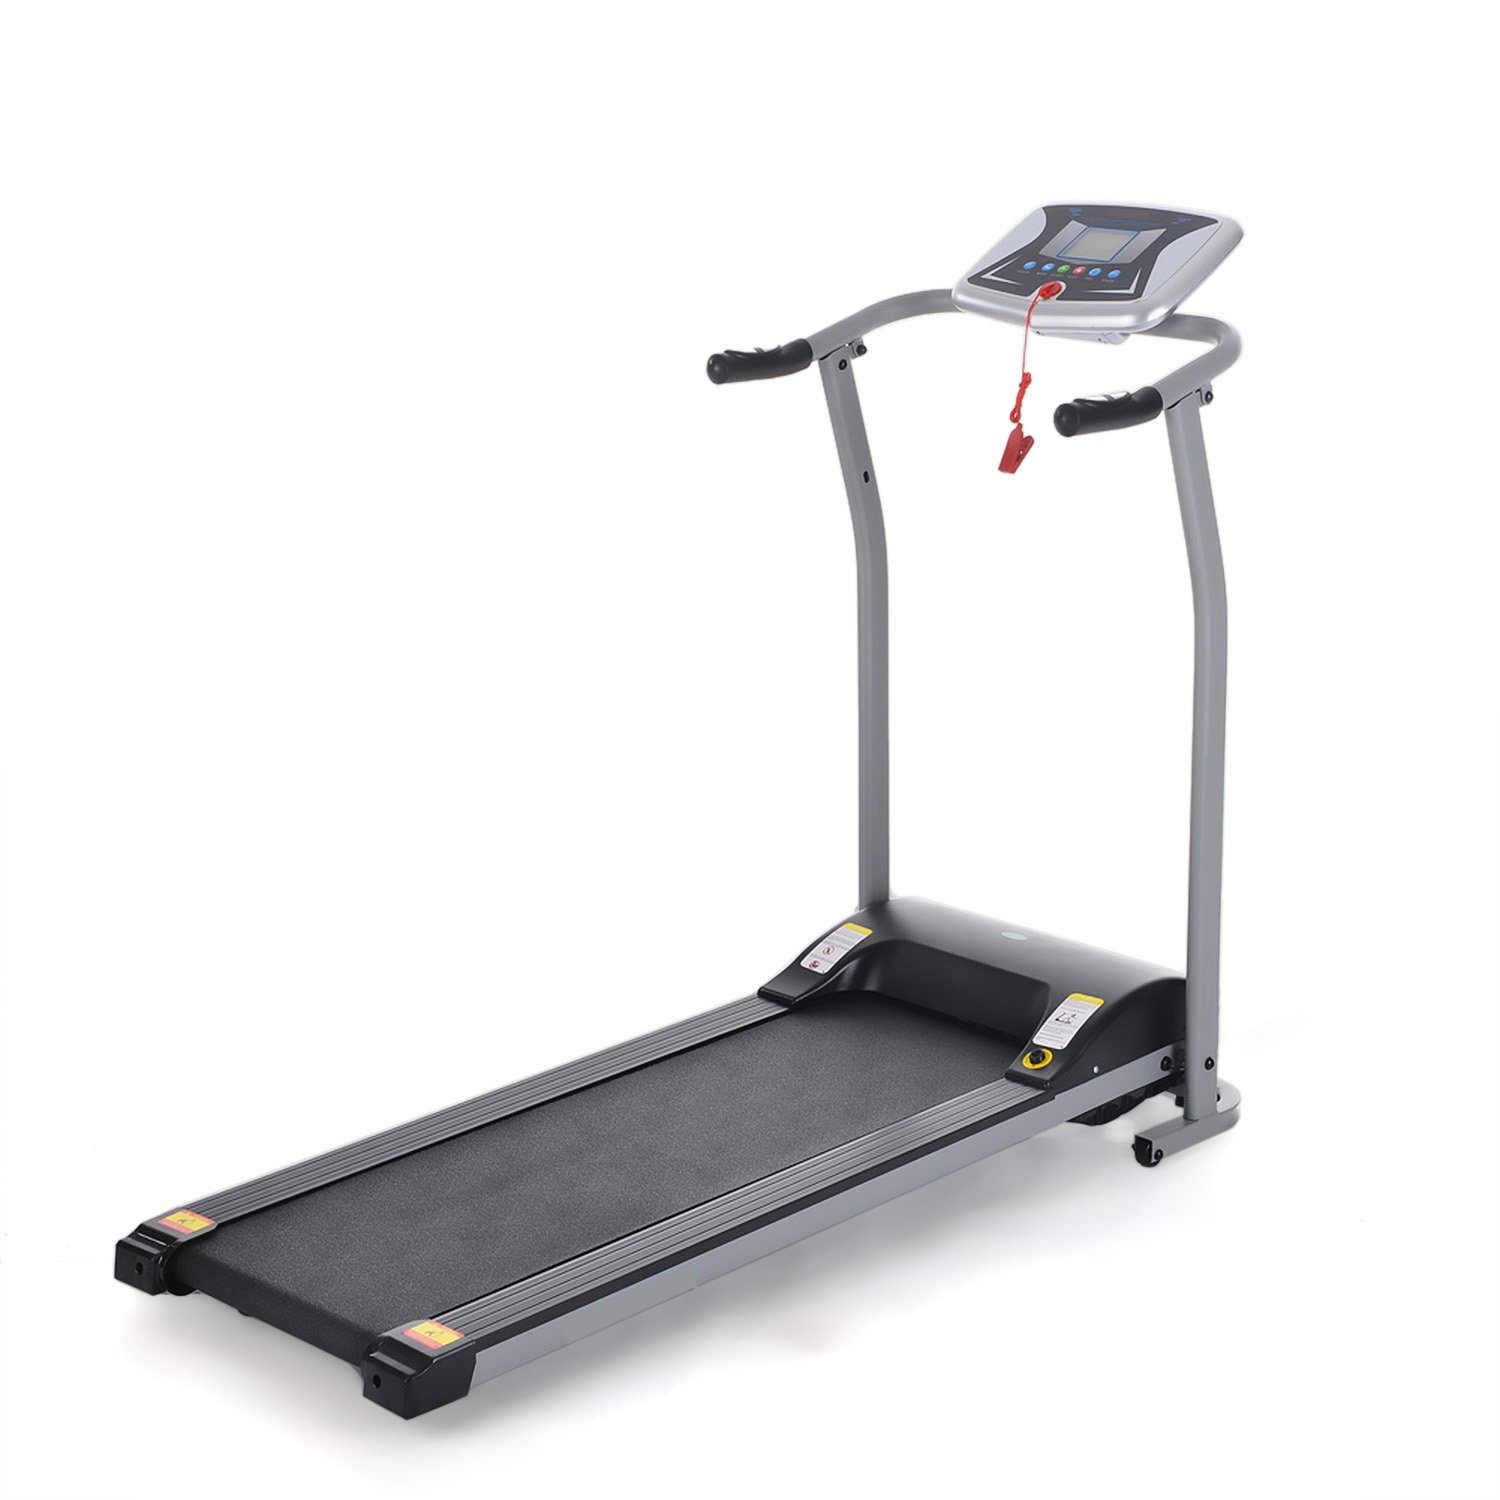 Folding Electric Treadmill Incline, Power Motorized Fitness Running Machine Walking Treadmill(US Stock) (1.5 HP/Sliver) by Tomasar (Image #1)